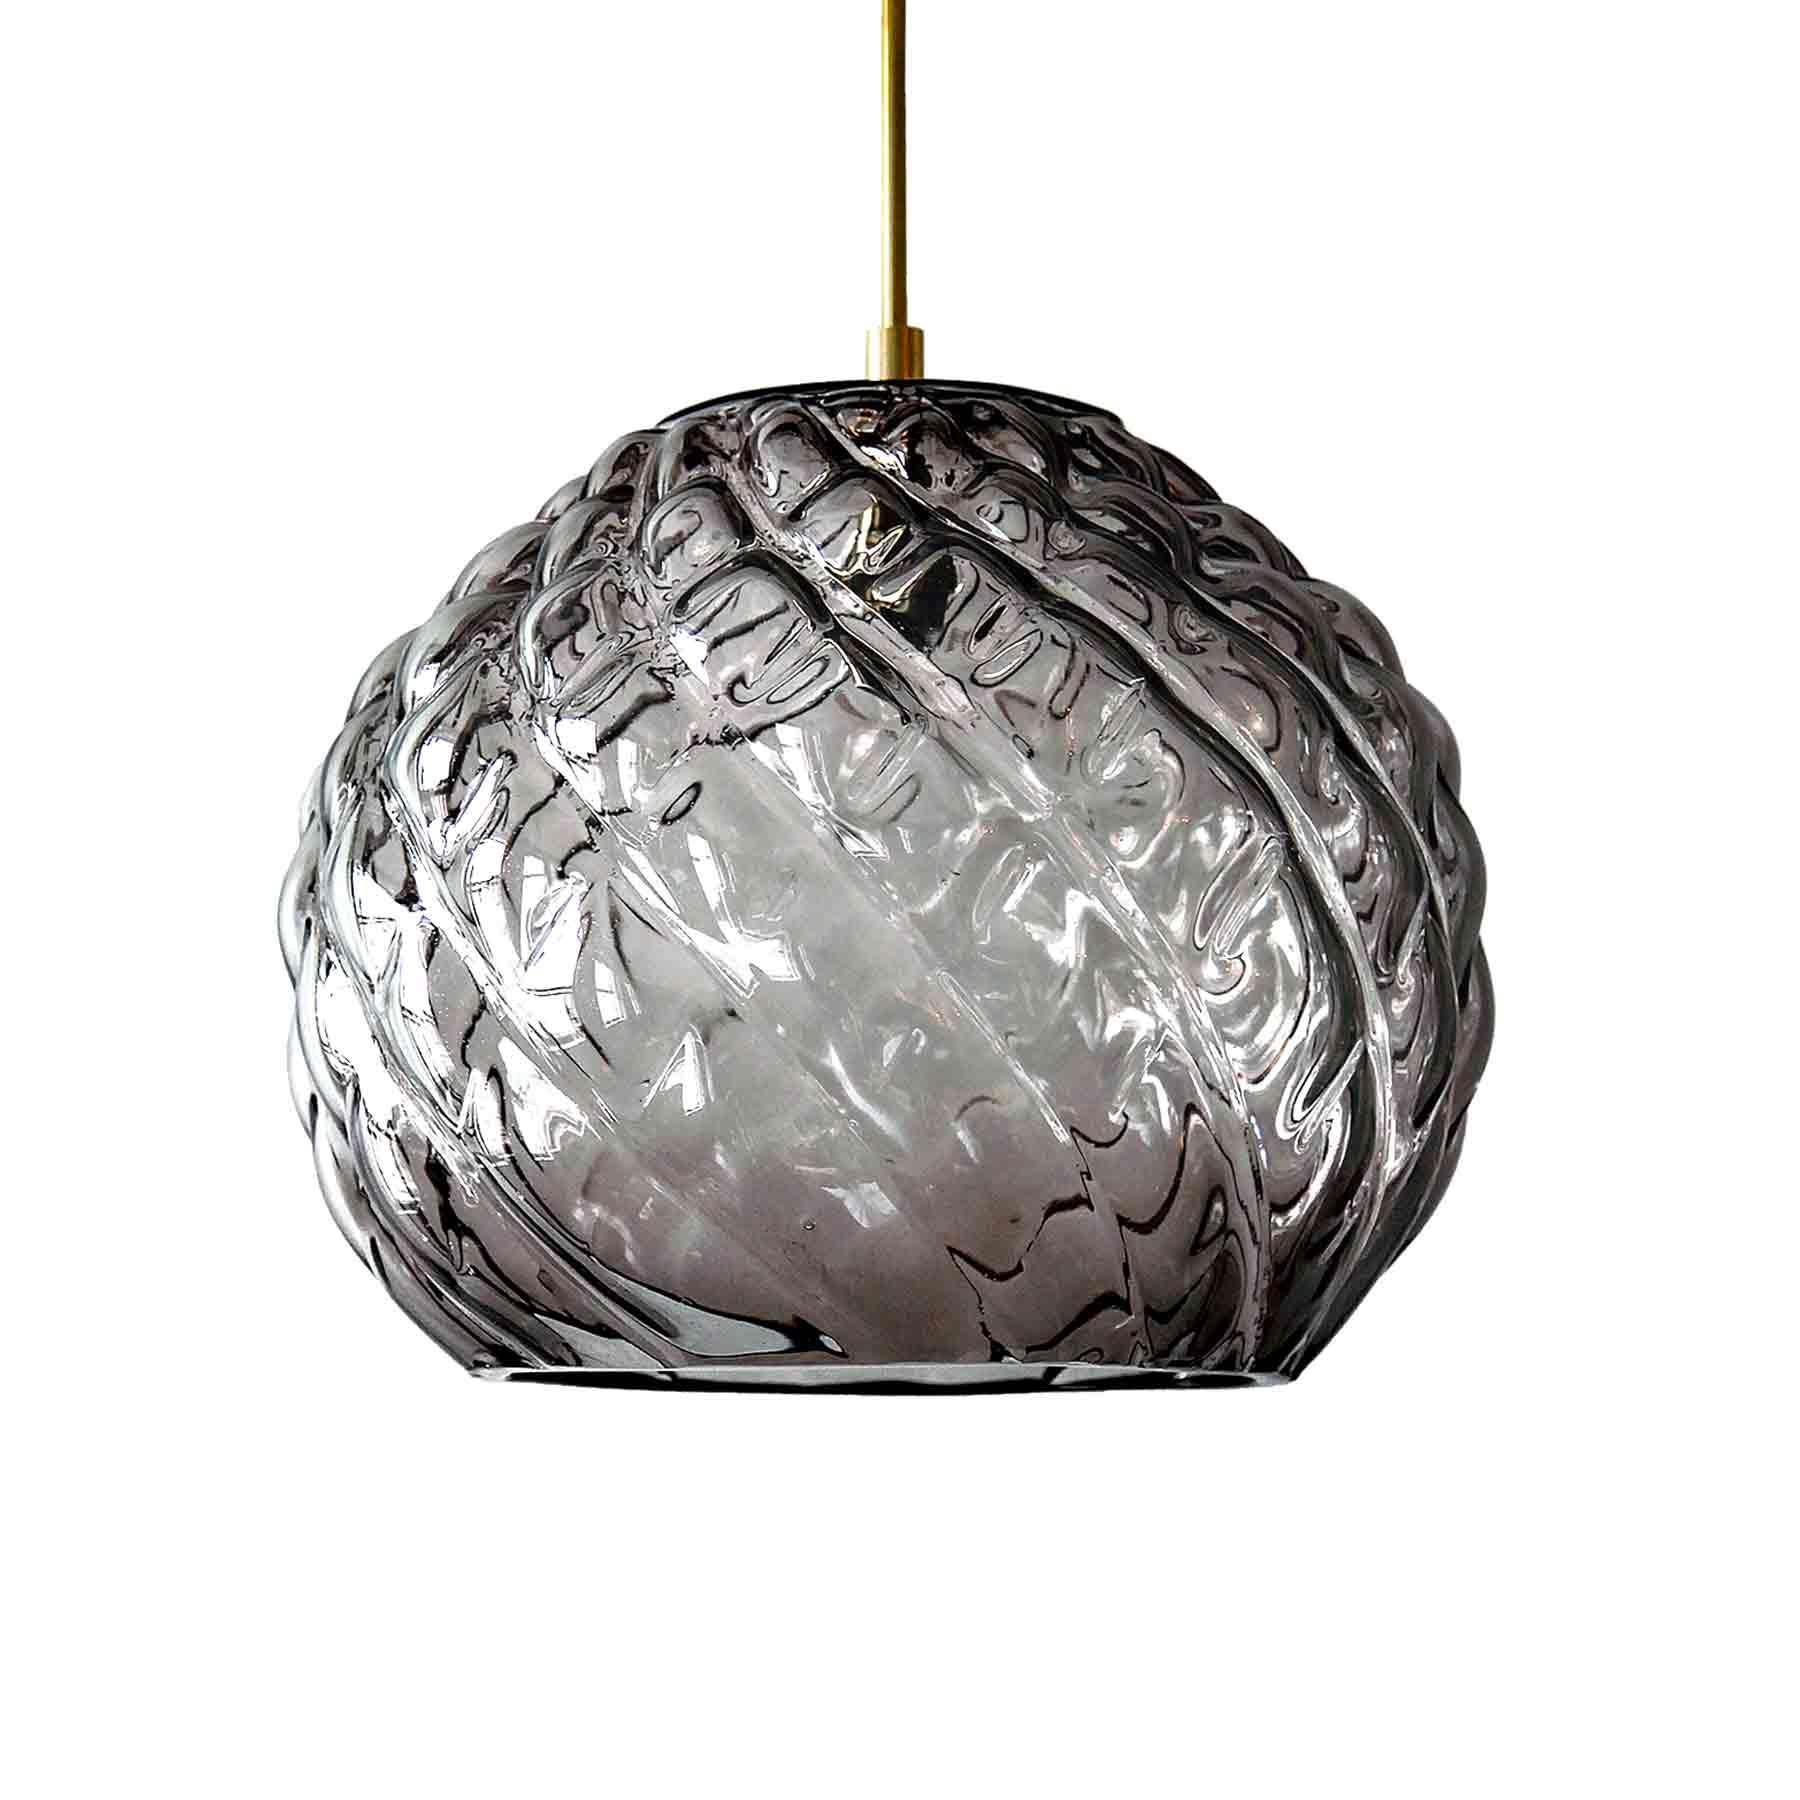 Handblown Glass Pendant, Charcoal Glass, Cuishe, Agave Lighting Collection